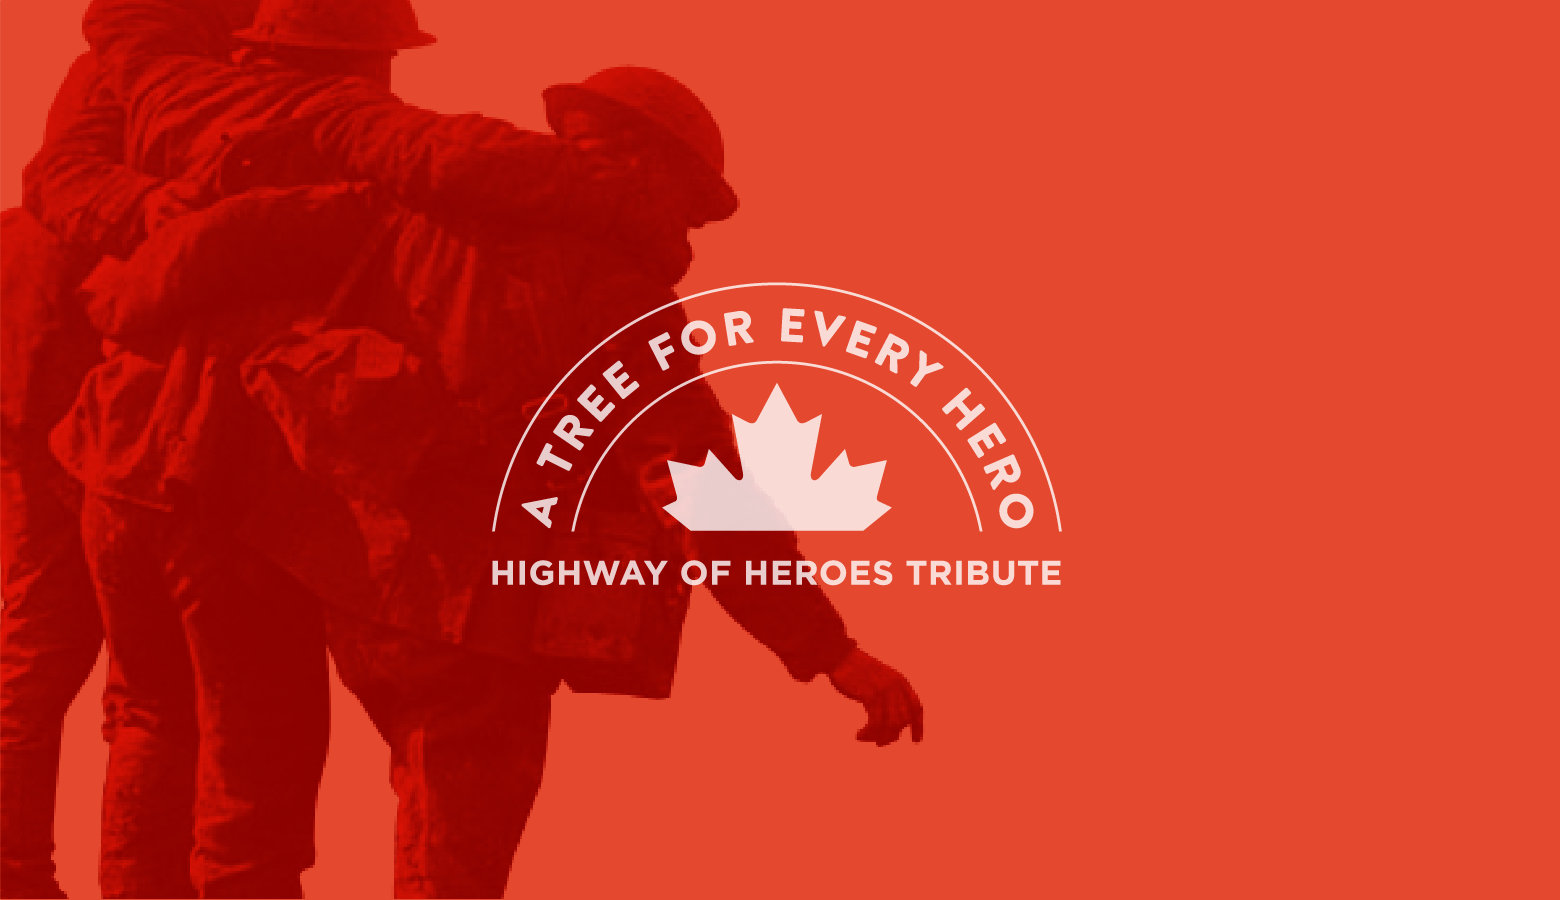 Highway of Heroes